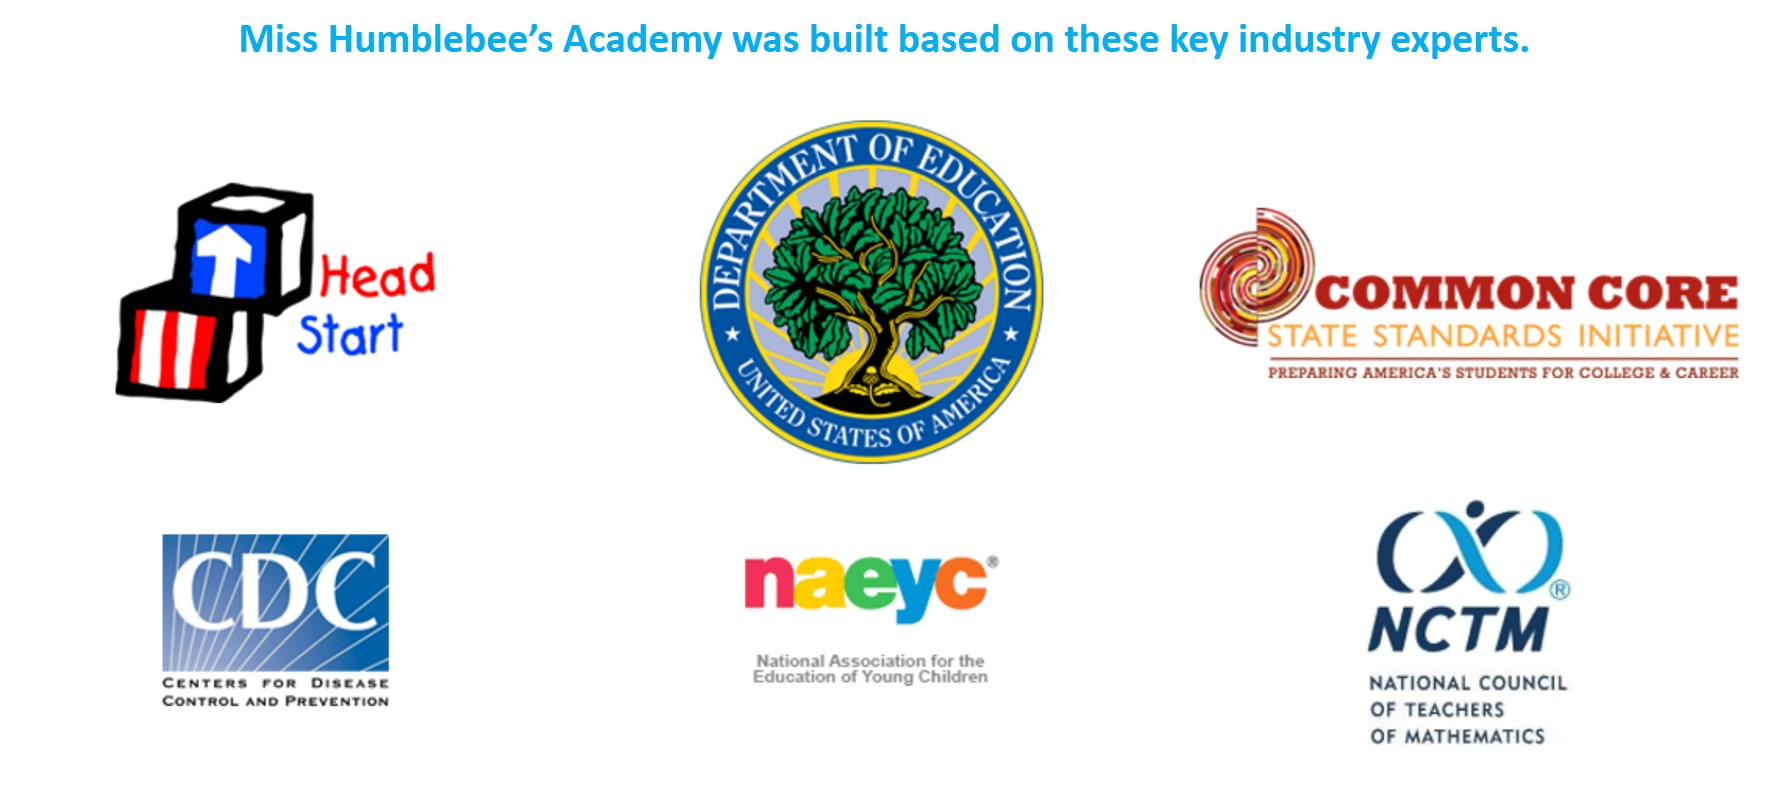 The program presents learning concepts based on guidelines from these organizations.